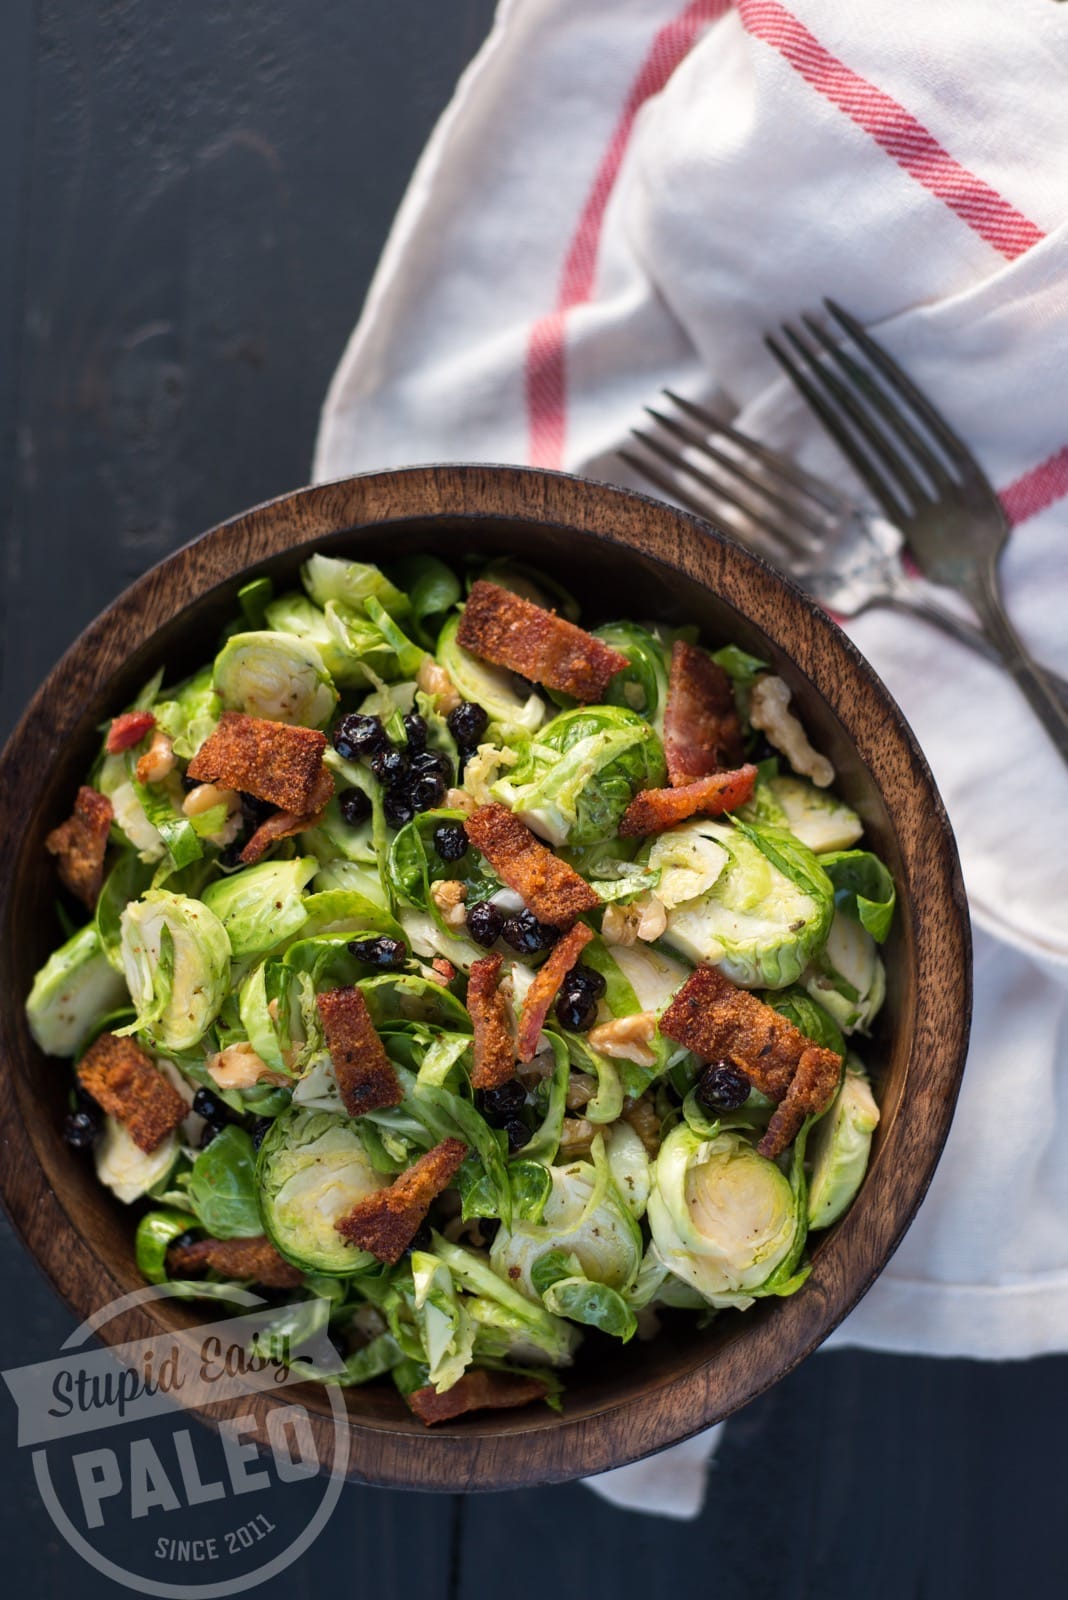 This Paleo Brussels Sprouts, Blueberry & Bacon Salad has crisp Brussels, sweet blueberries, savory bacon and tangy lemon tarragon dressing. | StupidEasyPaleo.com